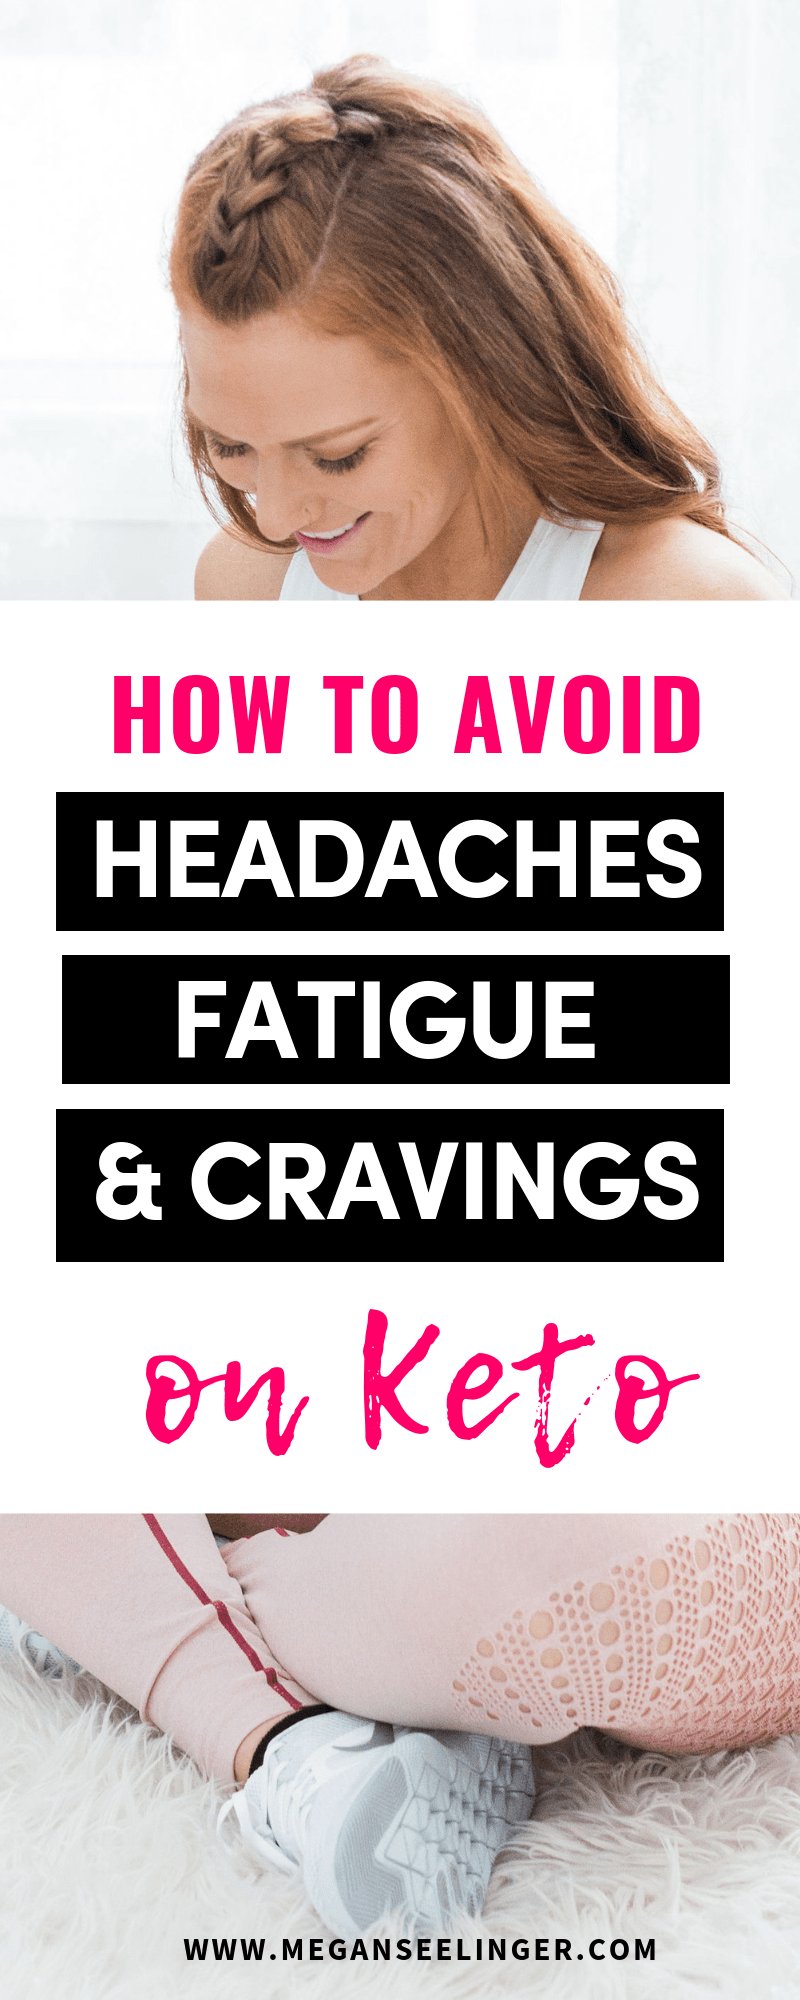 How to Tell if You're in Ketosis and Avoid Keto Flu Symptoms